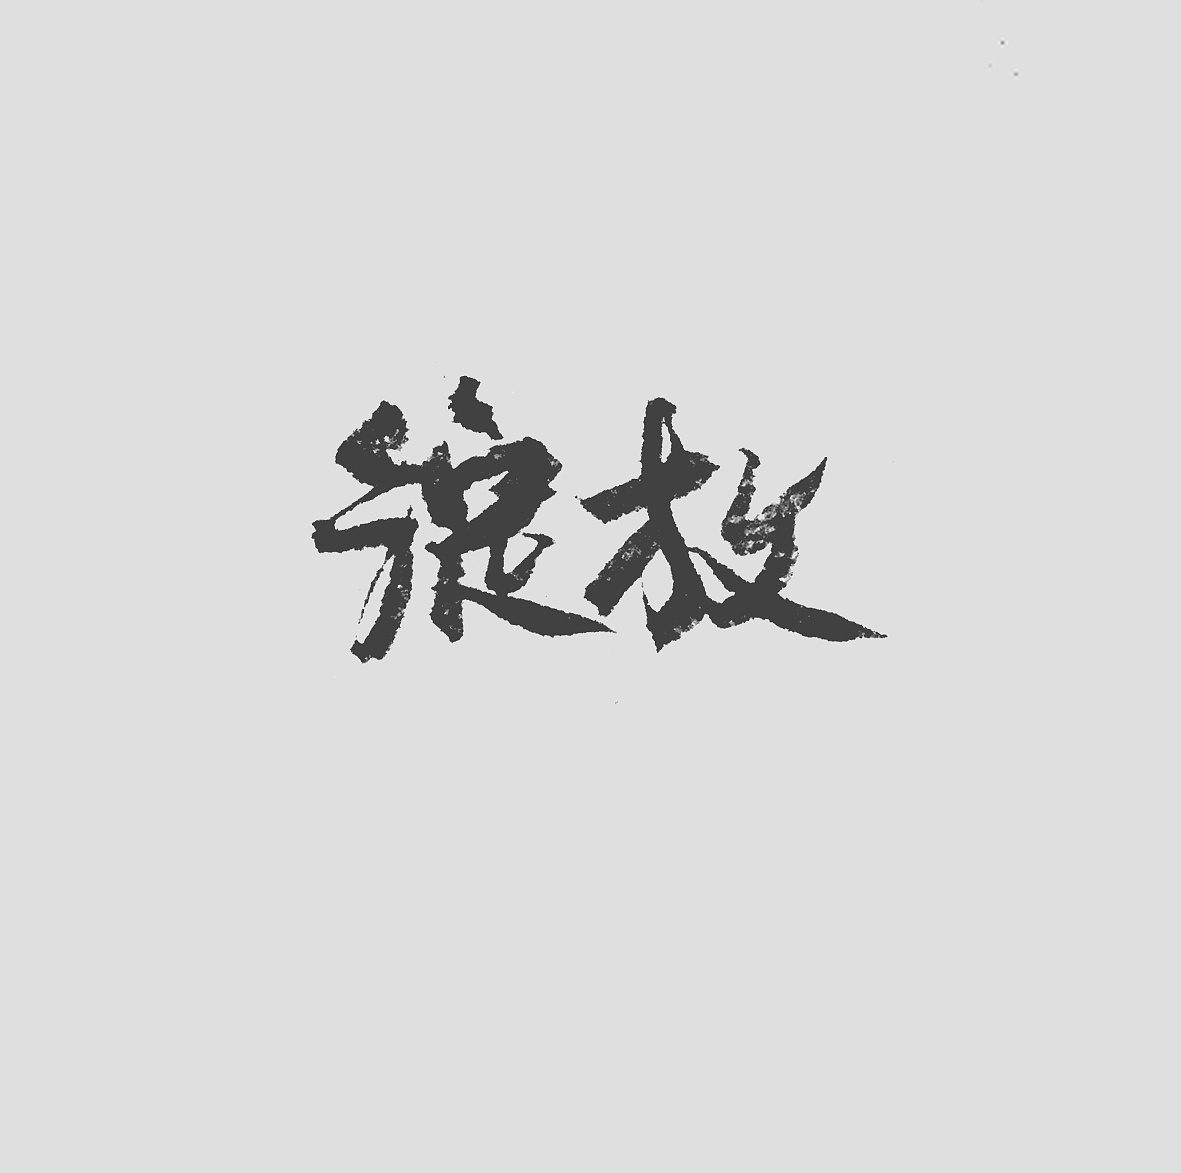 chinesefontdesign.com 2017 08 02 14 03 02 308303 21P The most cool and heroic Chinese brush calligraphy